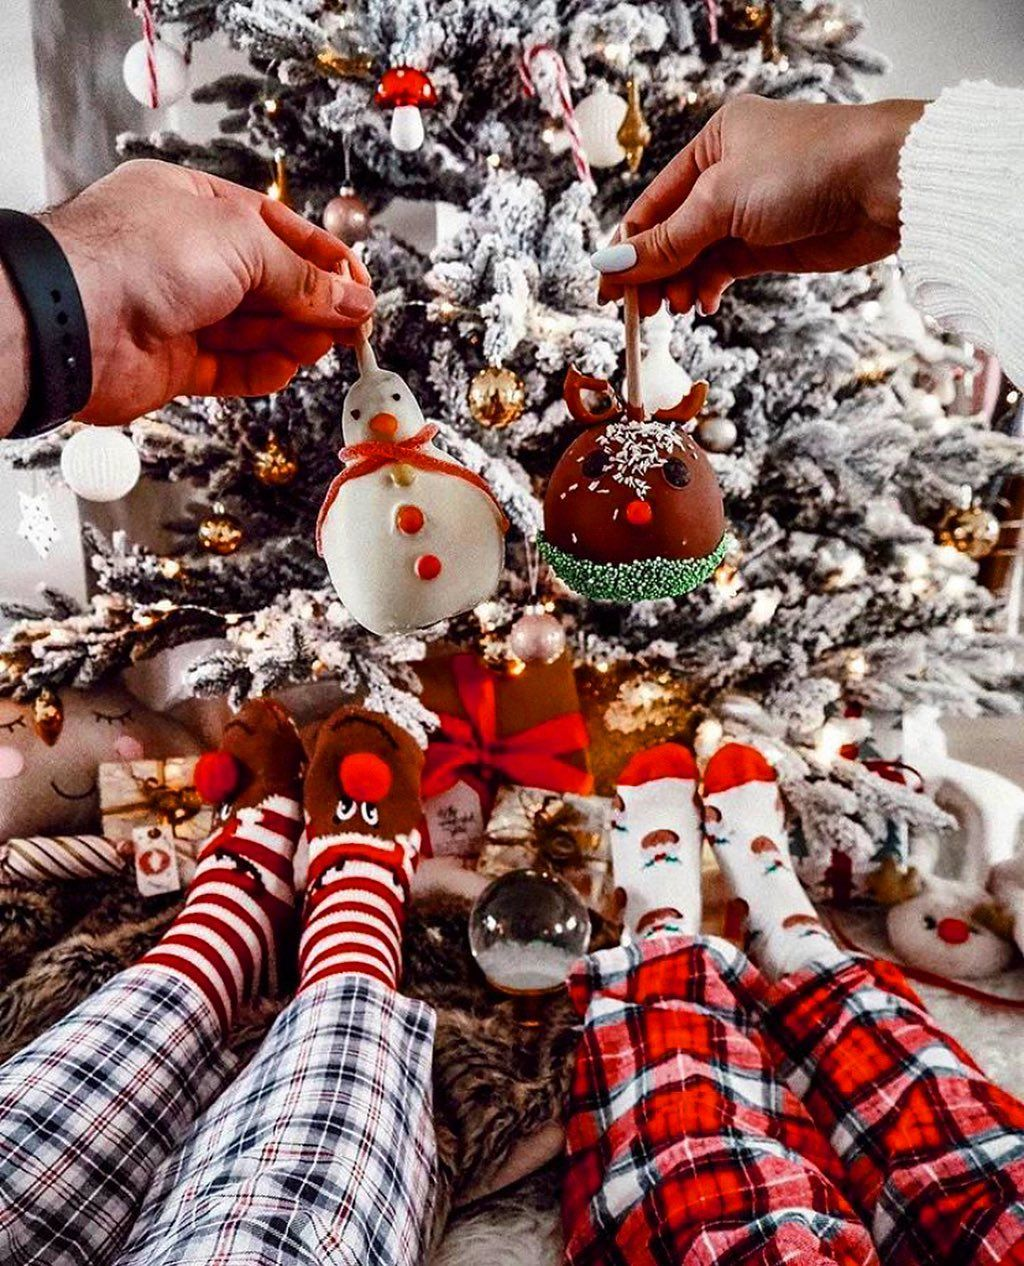 Christmas Santaclaus Winter On Instagram When Christmas Comes Too Town 126 Day In 2020 Christmas Gifts For Girlfriend Christmas Celebrations Christmas Spirit